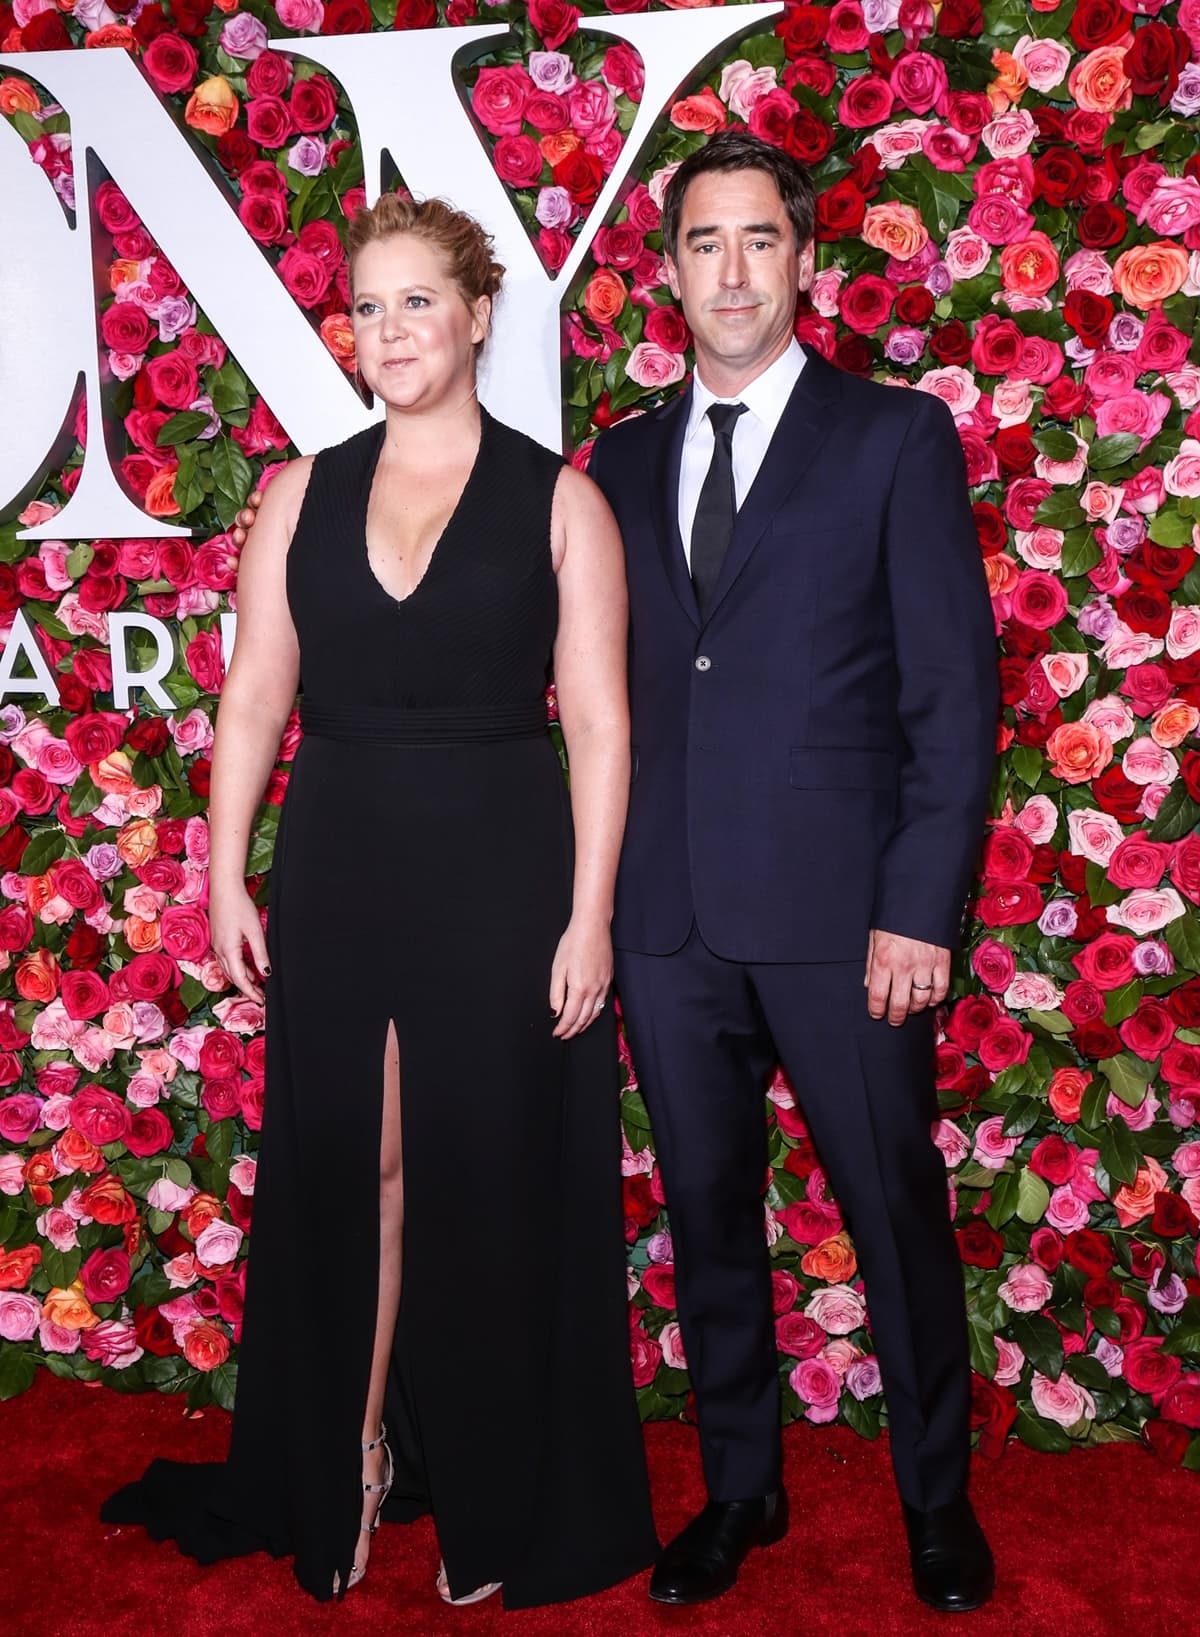 Amy Schumer joined her taller husband Chris Fischer on the red carpet